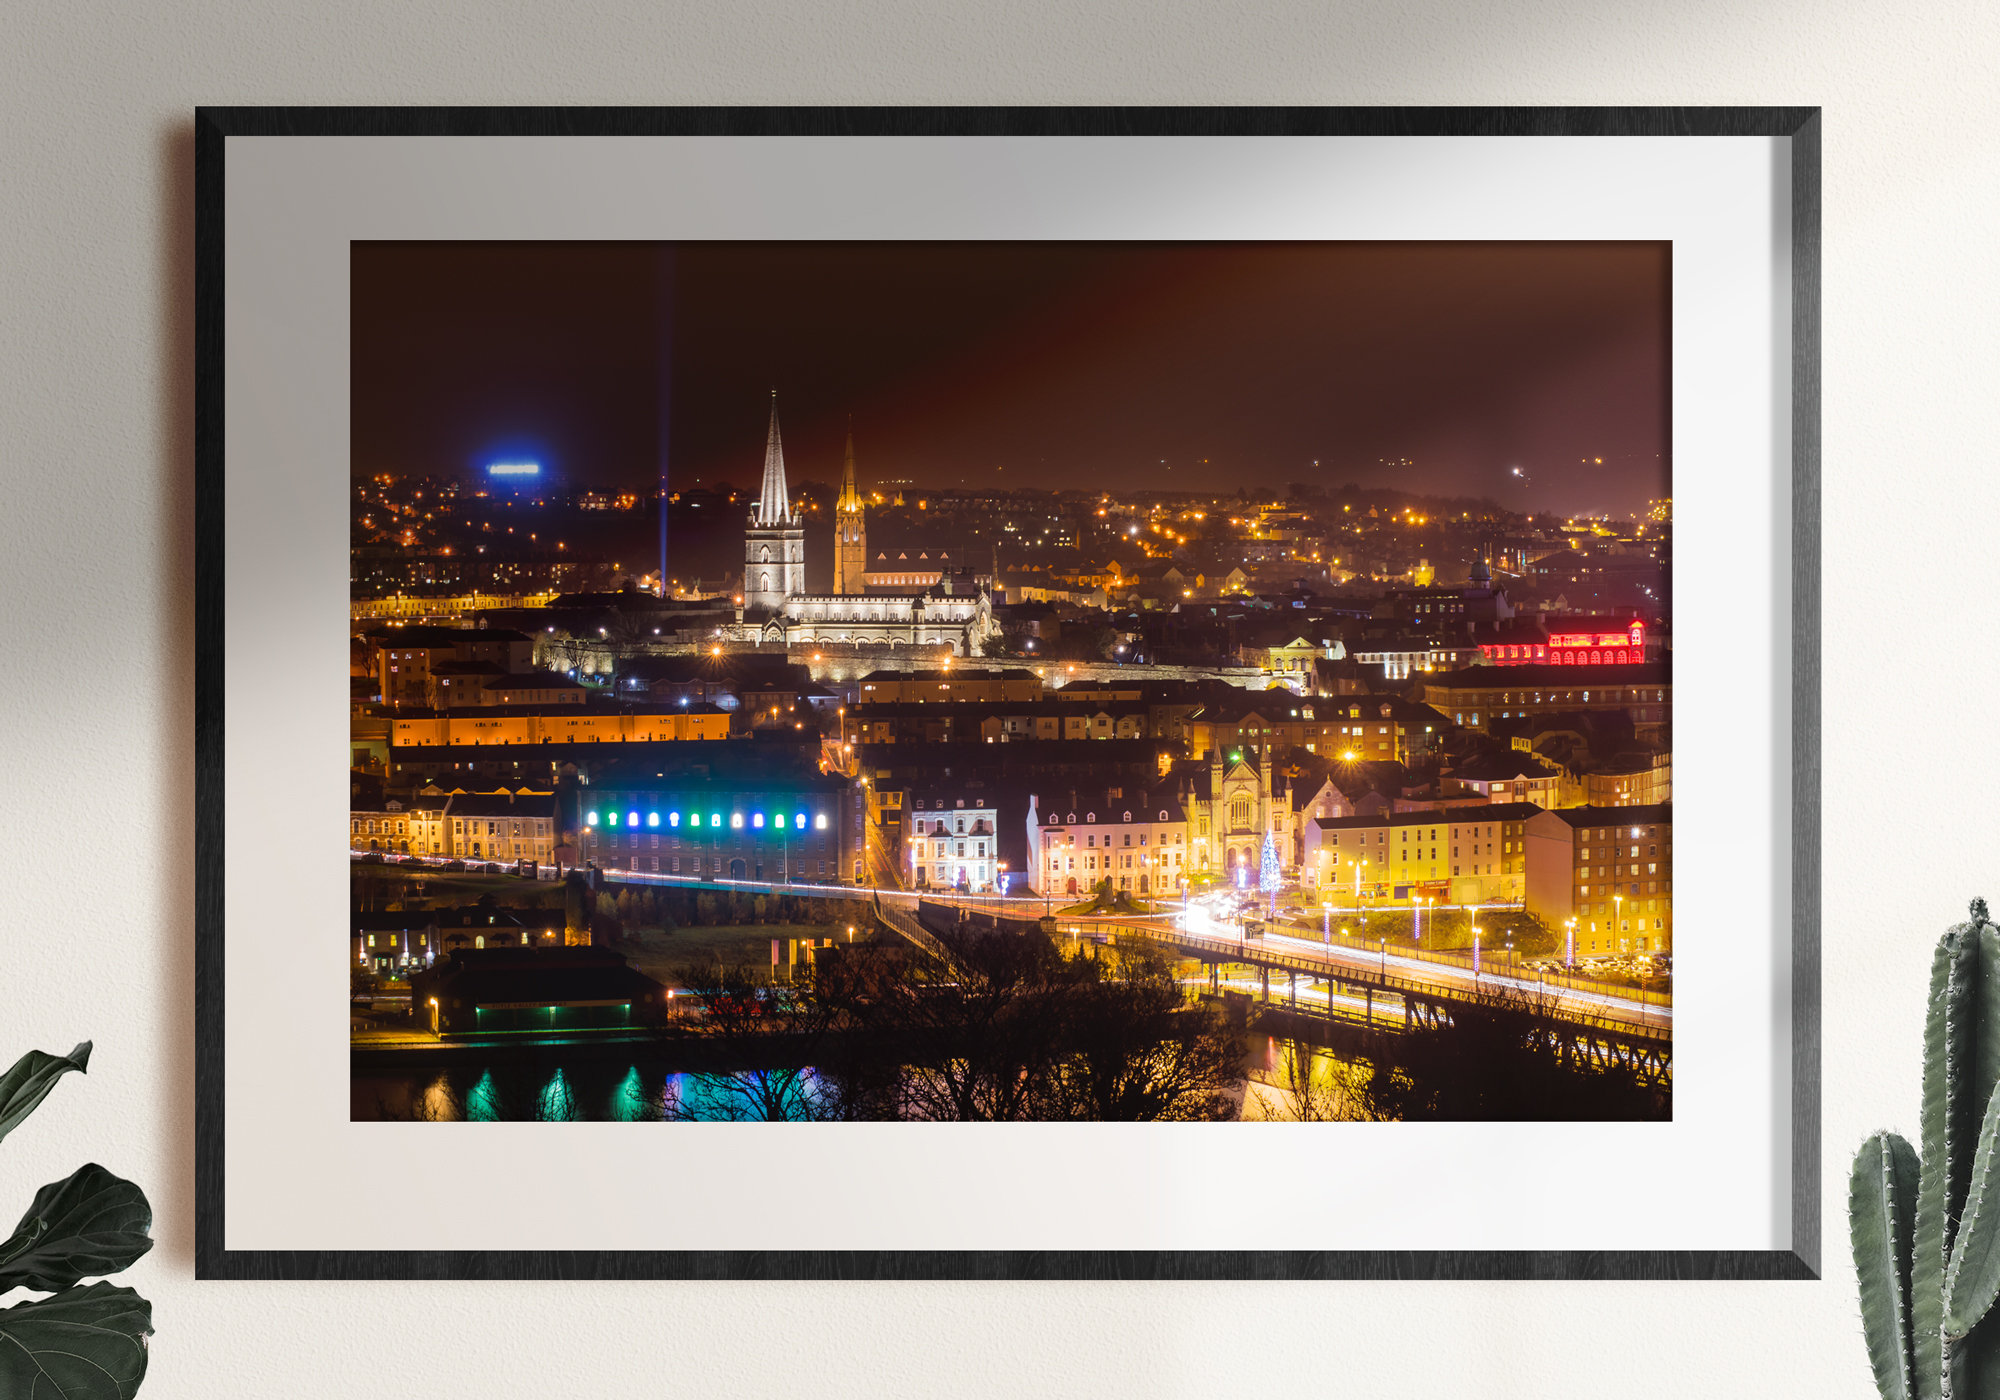 Derry Photos Buy Prints of Derry and Donegal